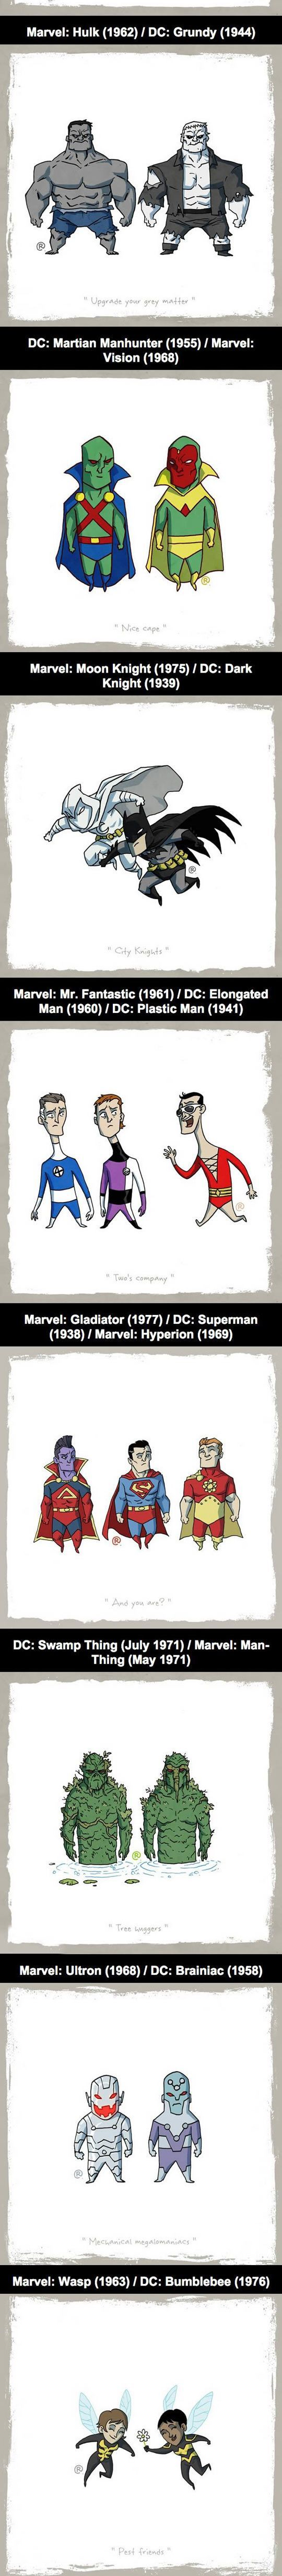 Marvel Vs DC: Caracteres equivalentes Part 3